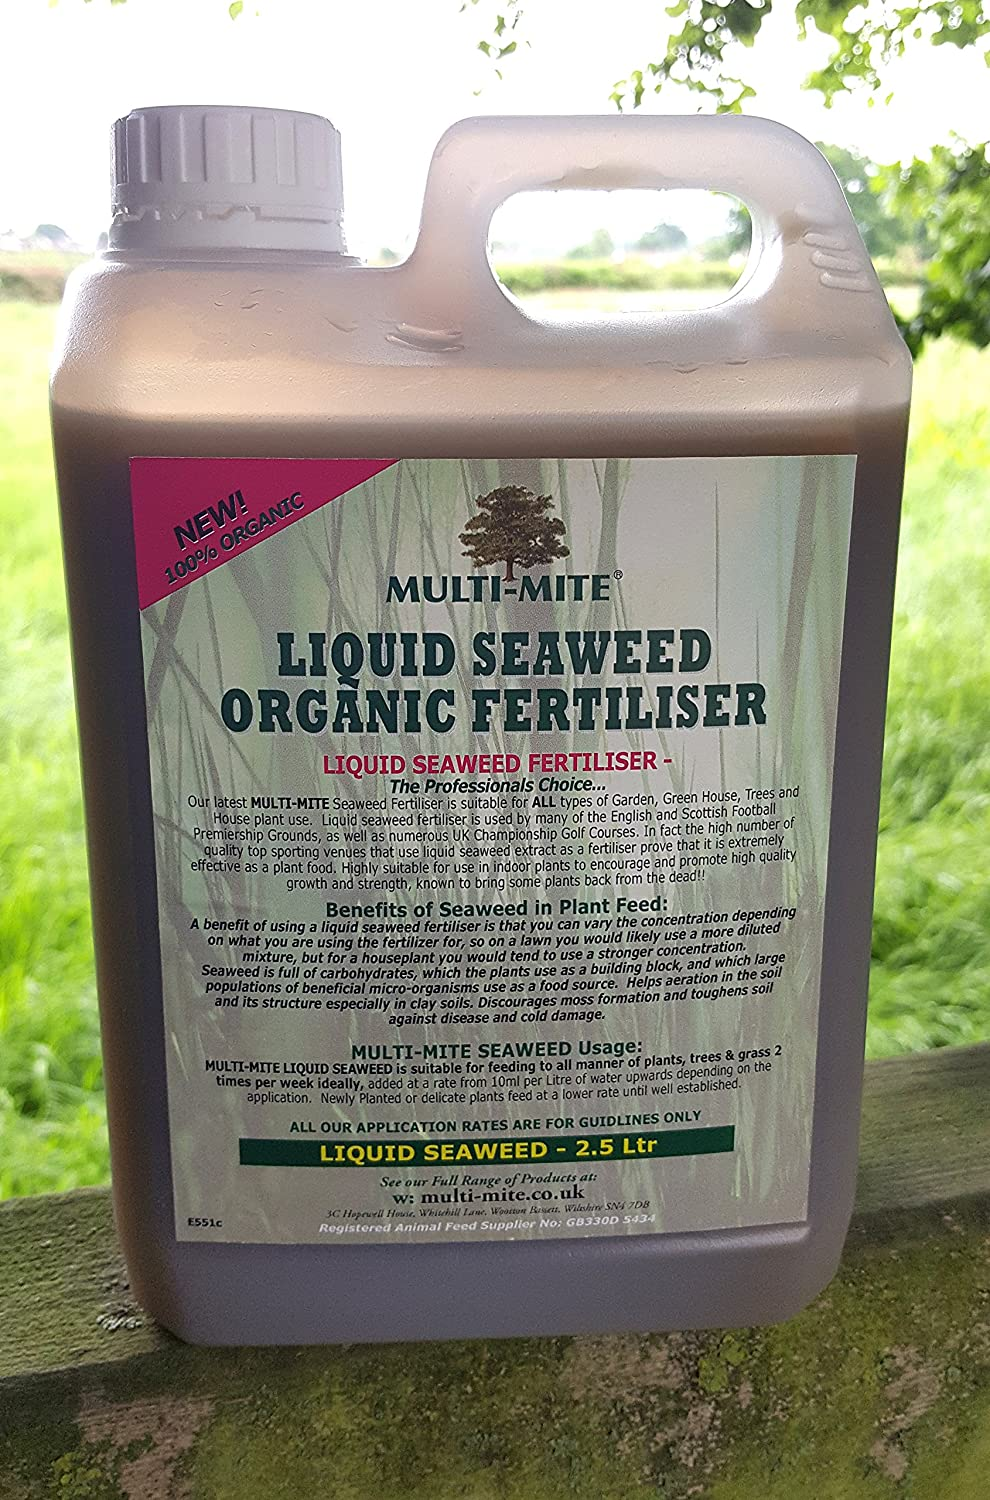 2.5 Ltr LIQUID SEAWEED FREE DELIVERY - Organic Concentrate - Multi-Mite®